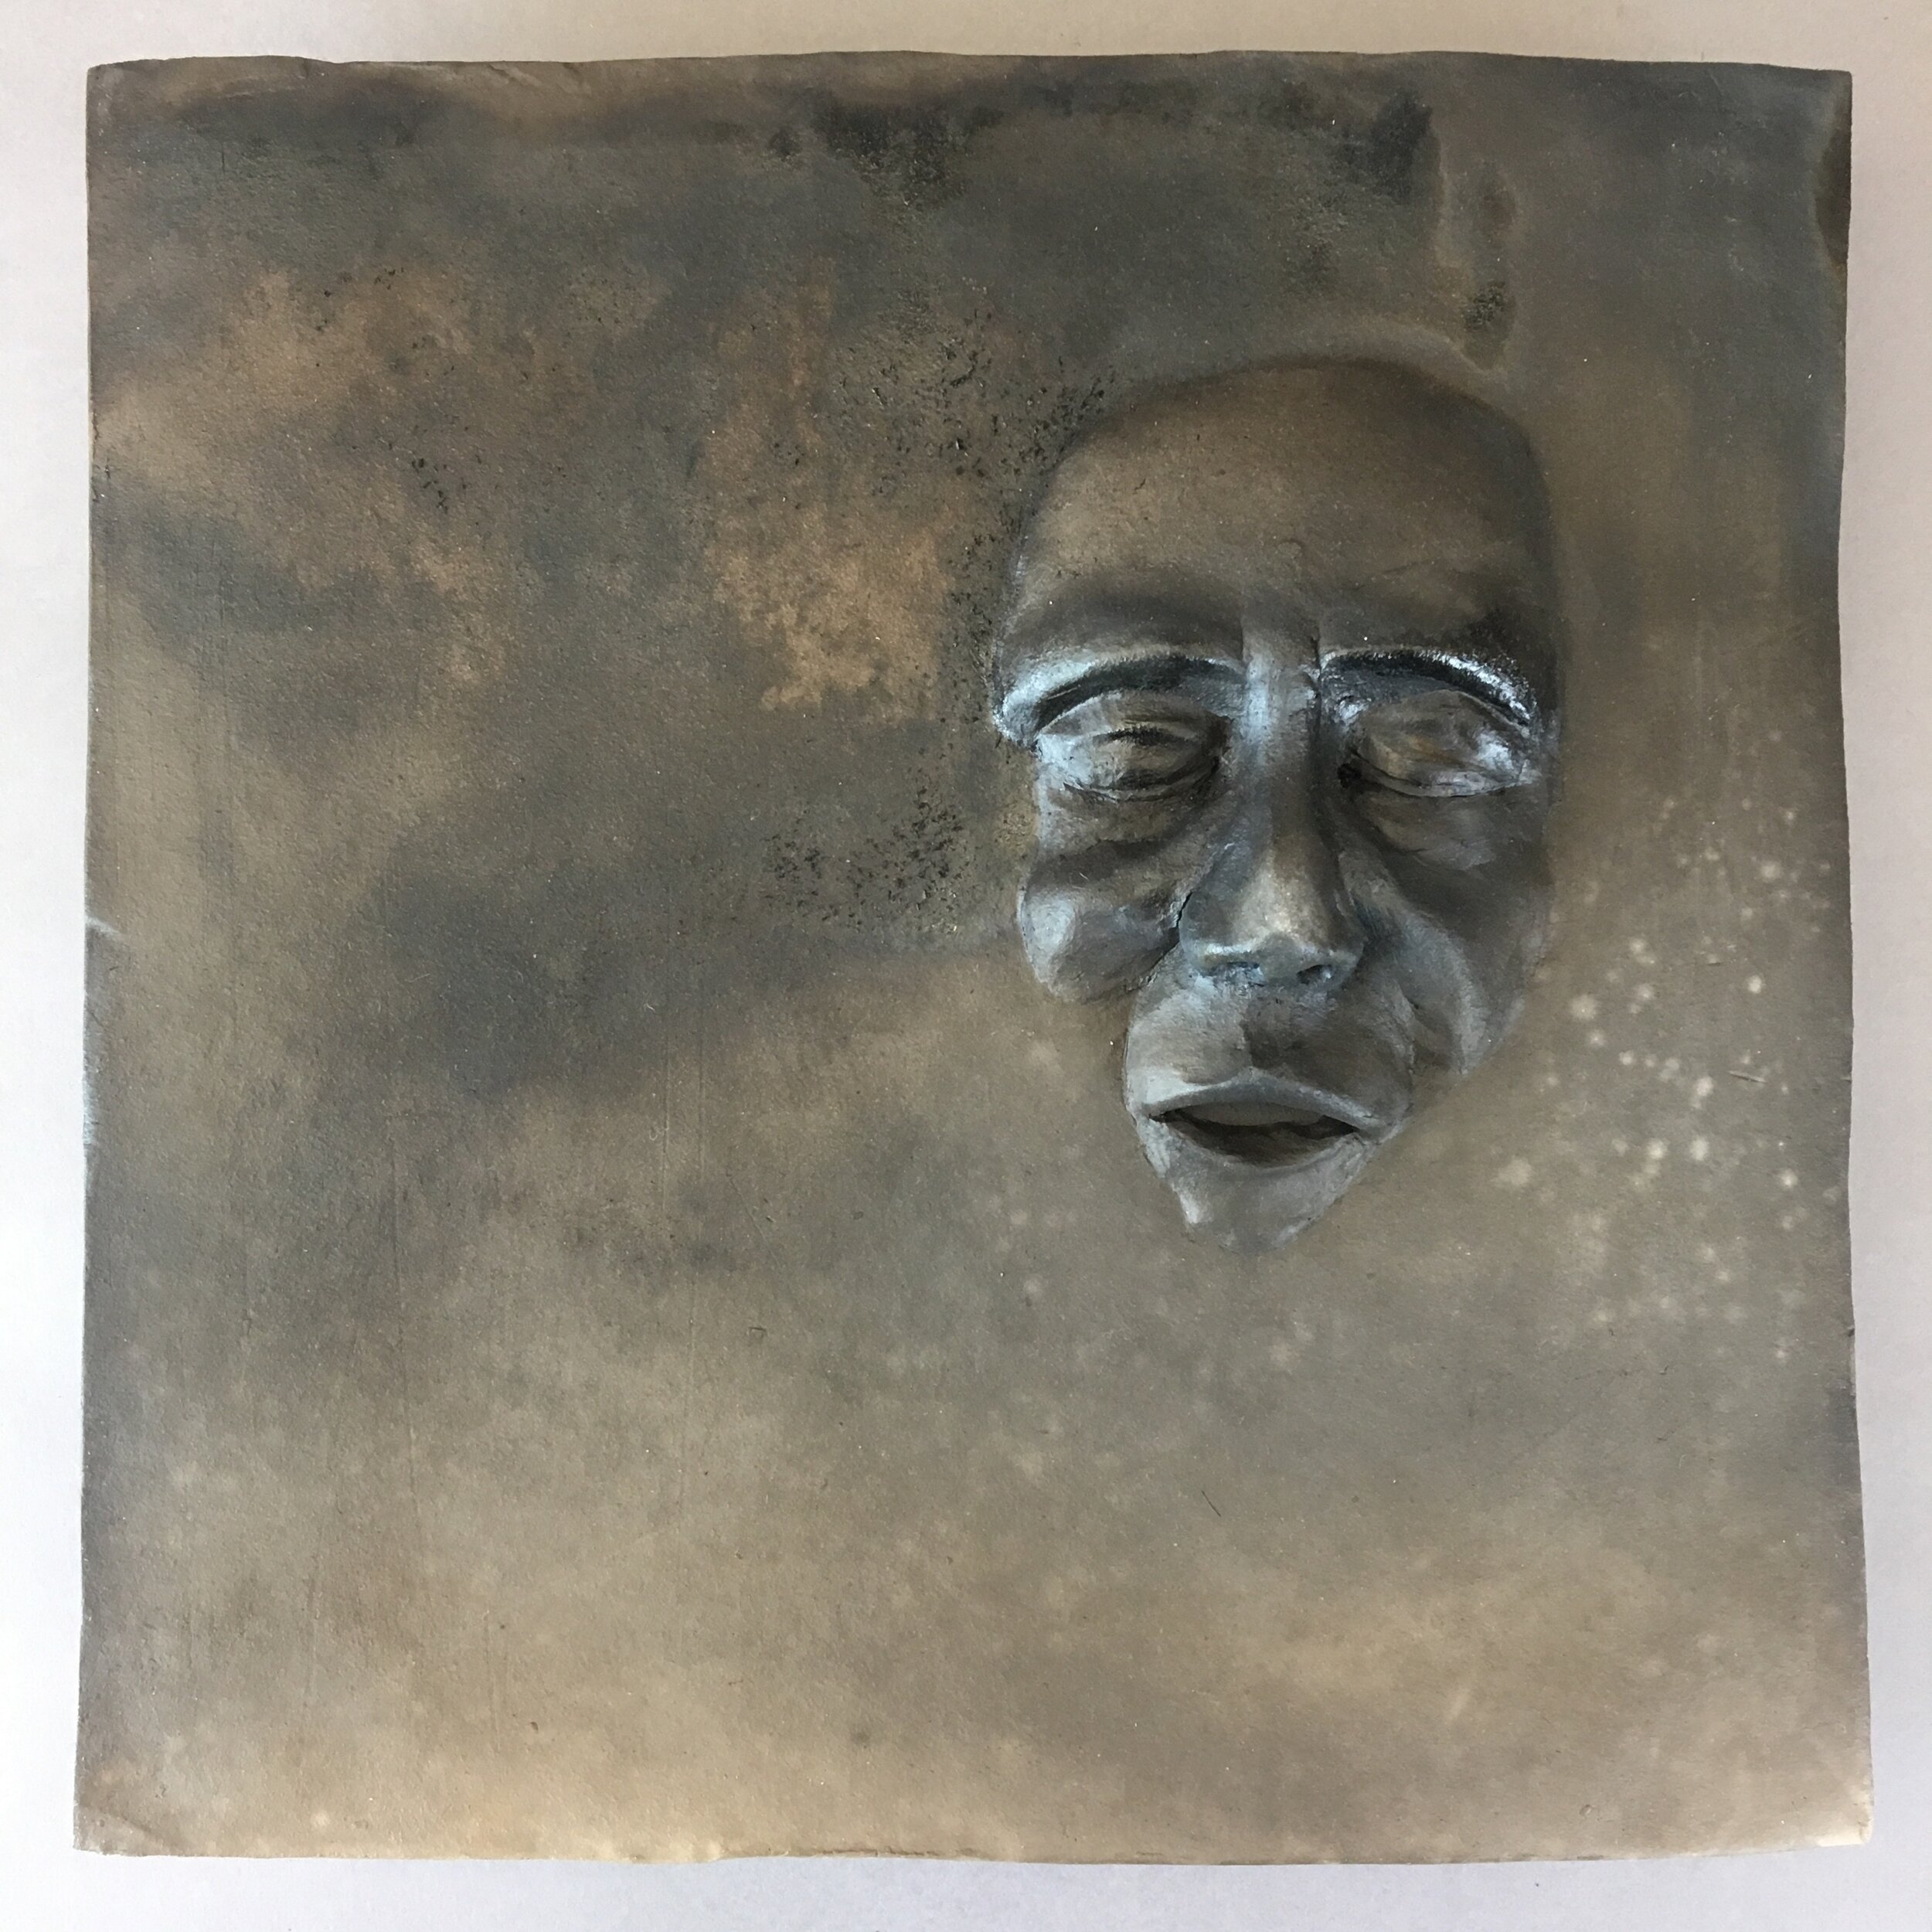 """Becoming  (panel 7 of 15)   Pit-fired ceramic on birch mounts  11.5"""" x 11.5"""" x variable thickness  Relief panels: $400 each  Flat panels: $75 each  Complete set: $4500  Click image to enlarge ⦿  Inquire"""